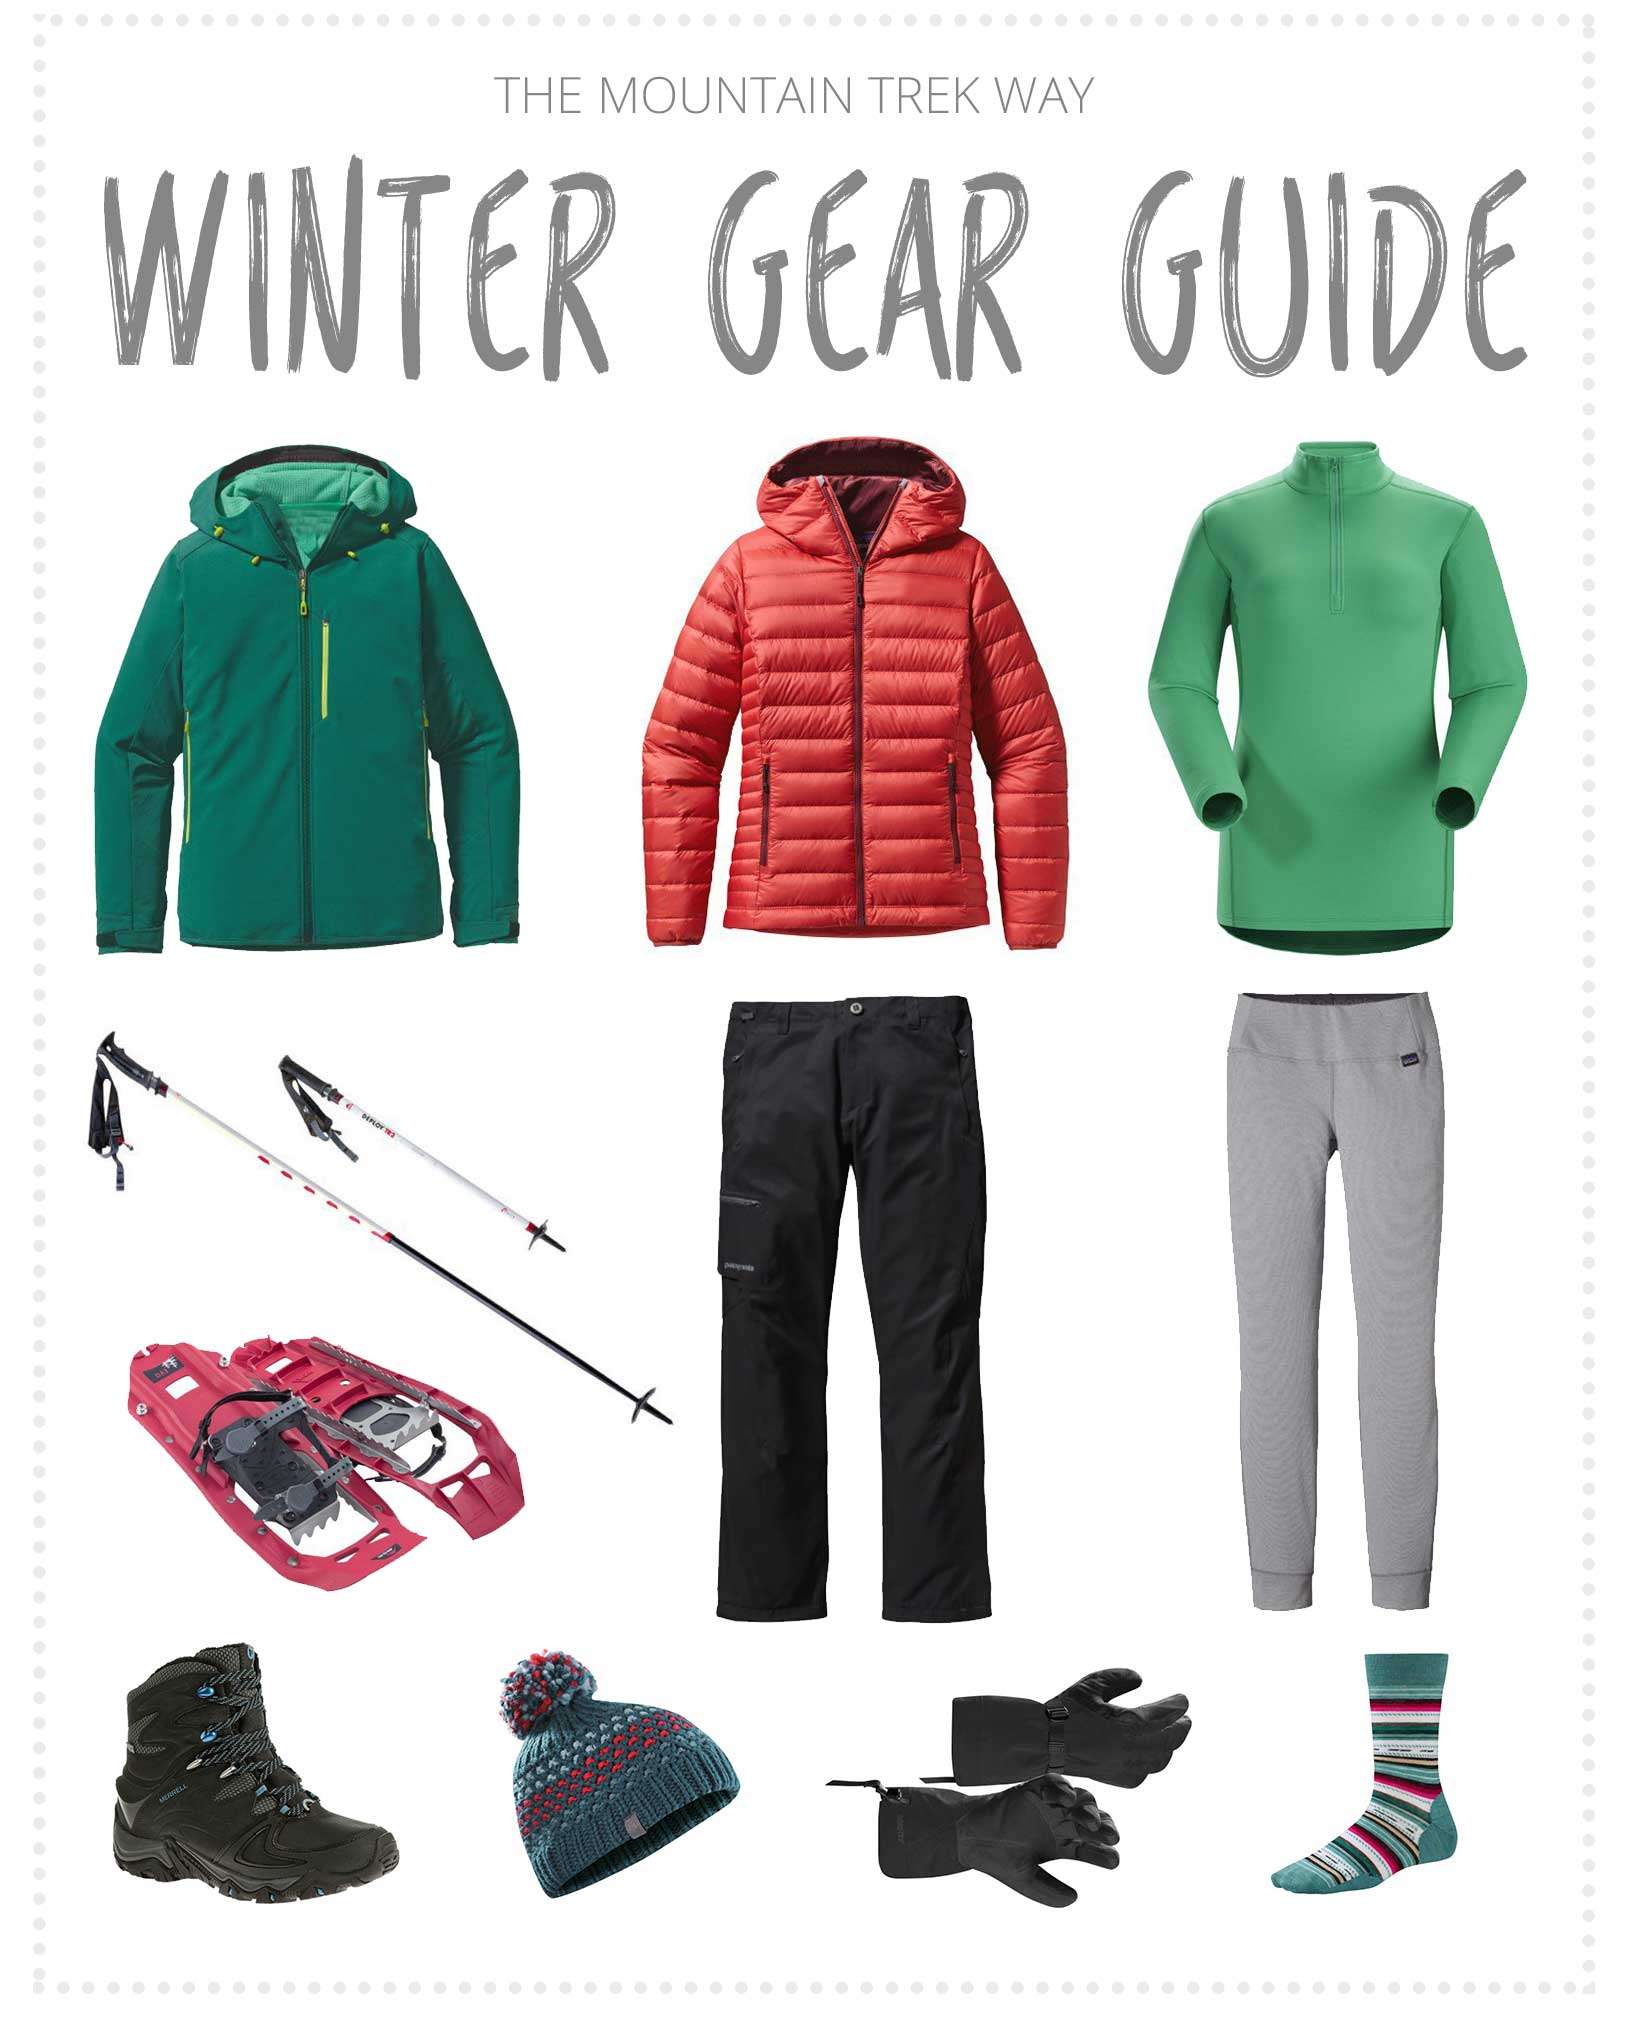 The Mountain Trek Way Winter Gear Guide